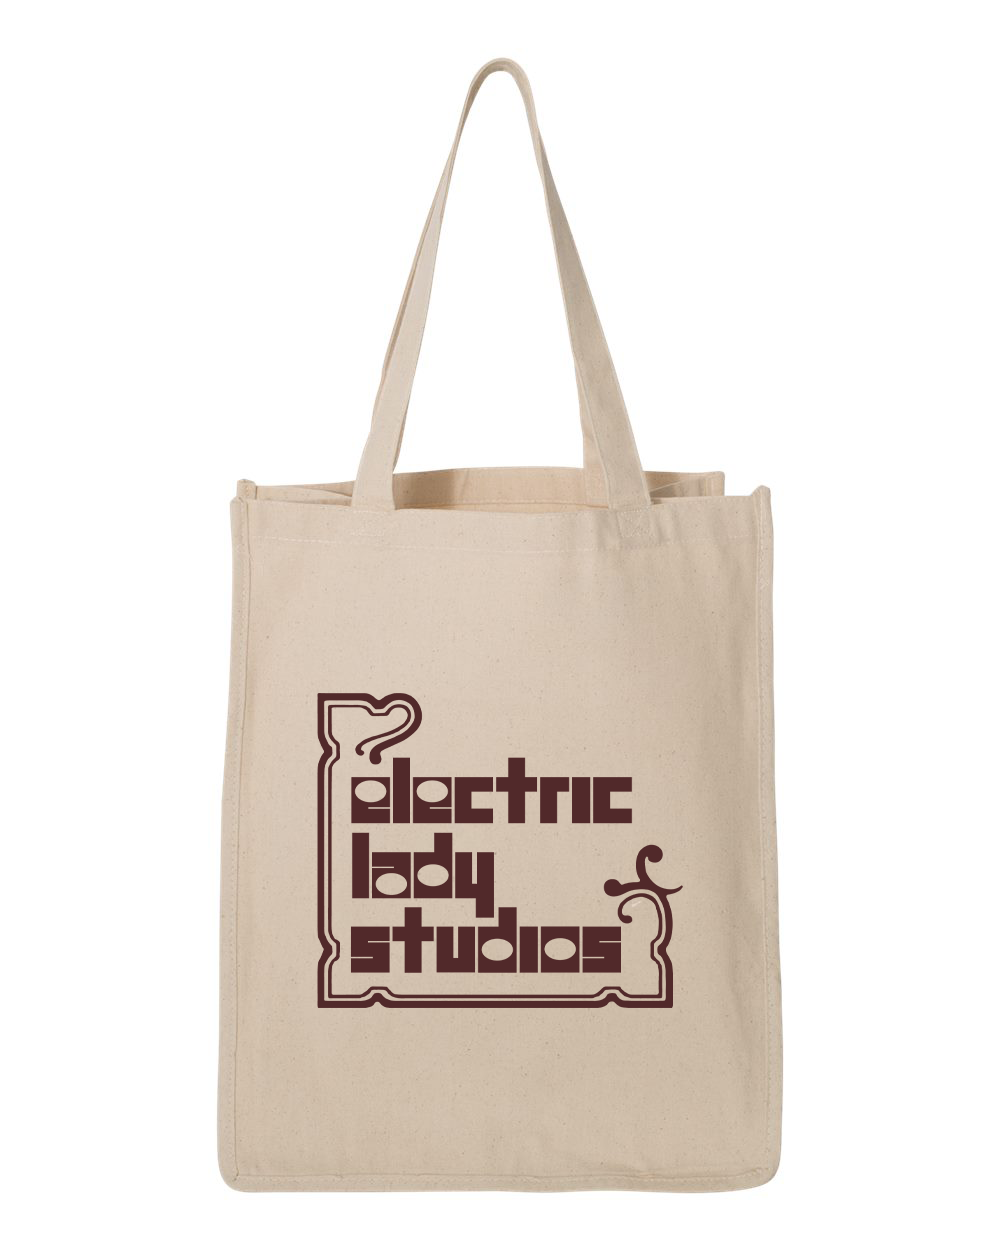 Image of Vintage Logo Tote - ELS 50th Anniversary Collection